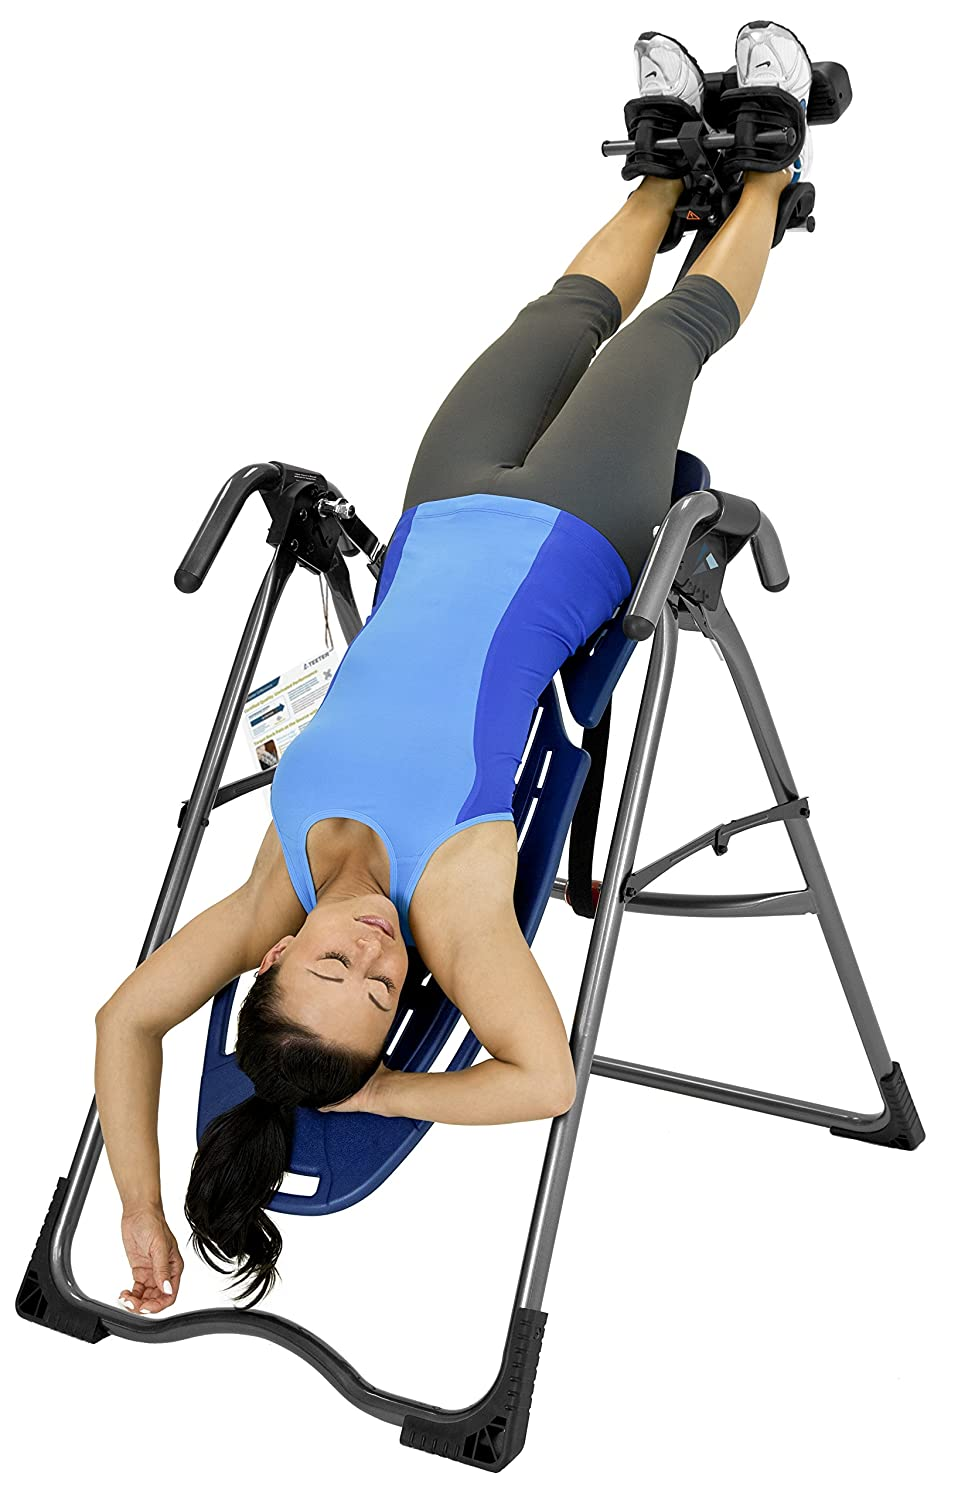 Teeter Inversion Table What You Should Know a...